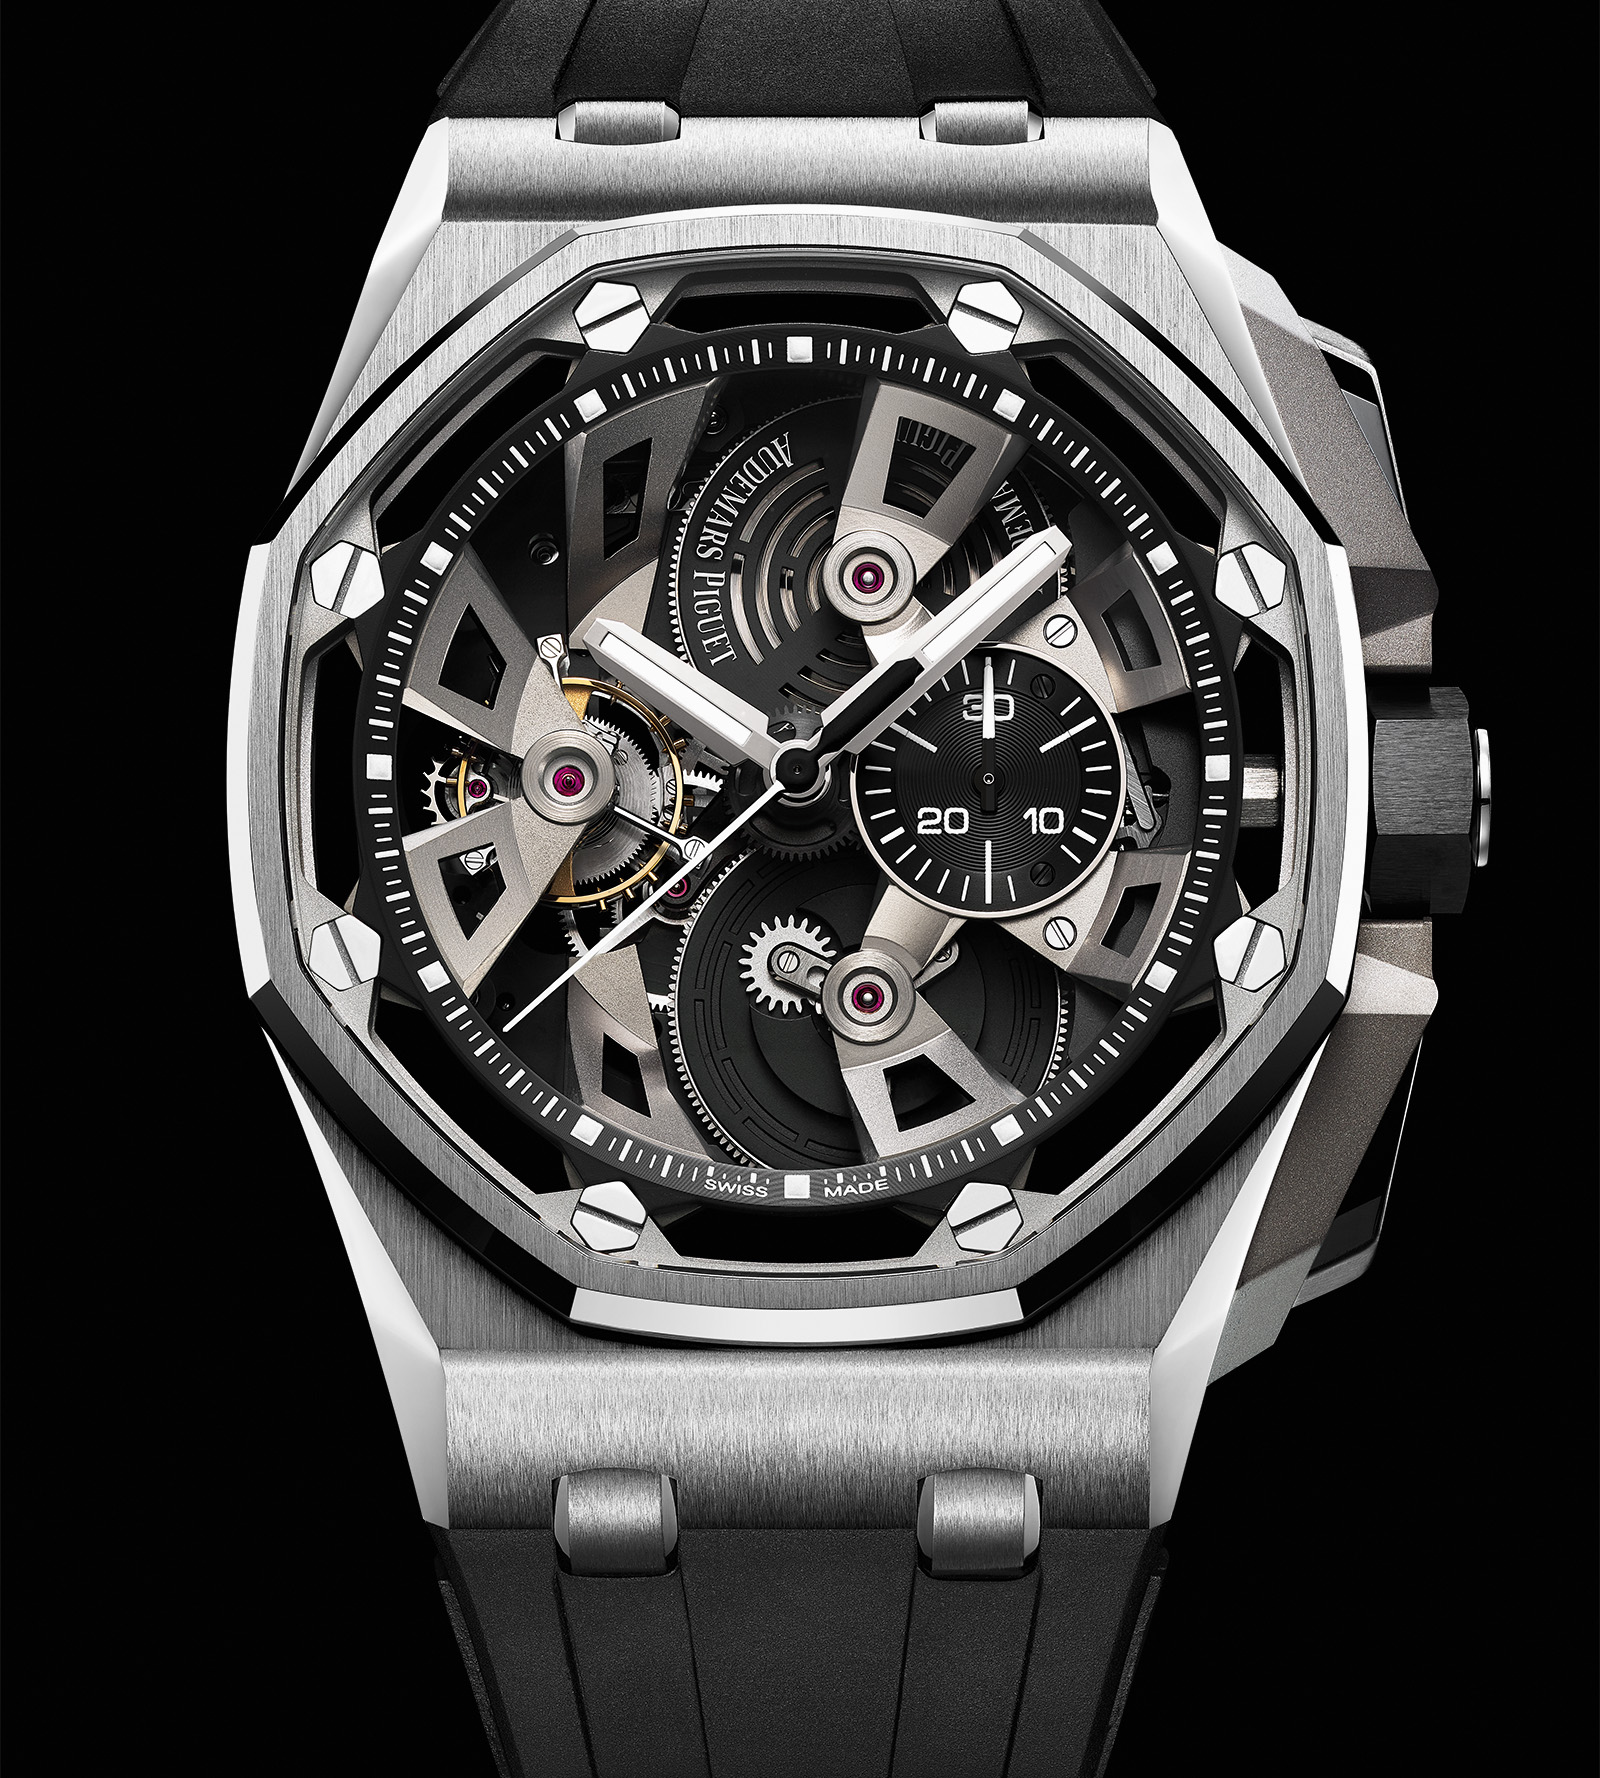 AP-Royal-Oak-Offshore-Tourbillon-Chronograph-1.jpg